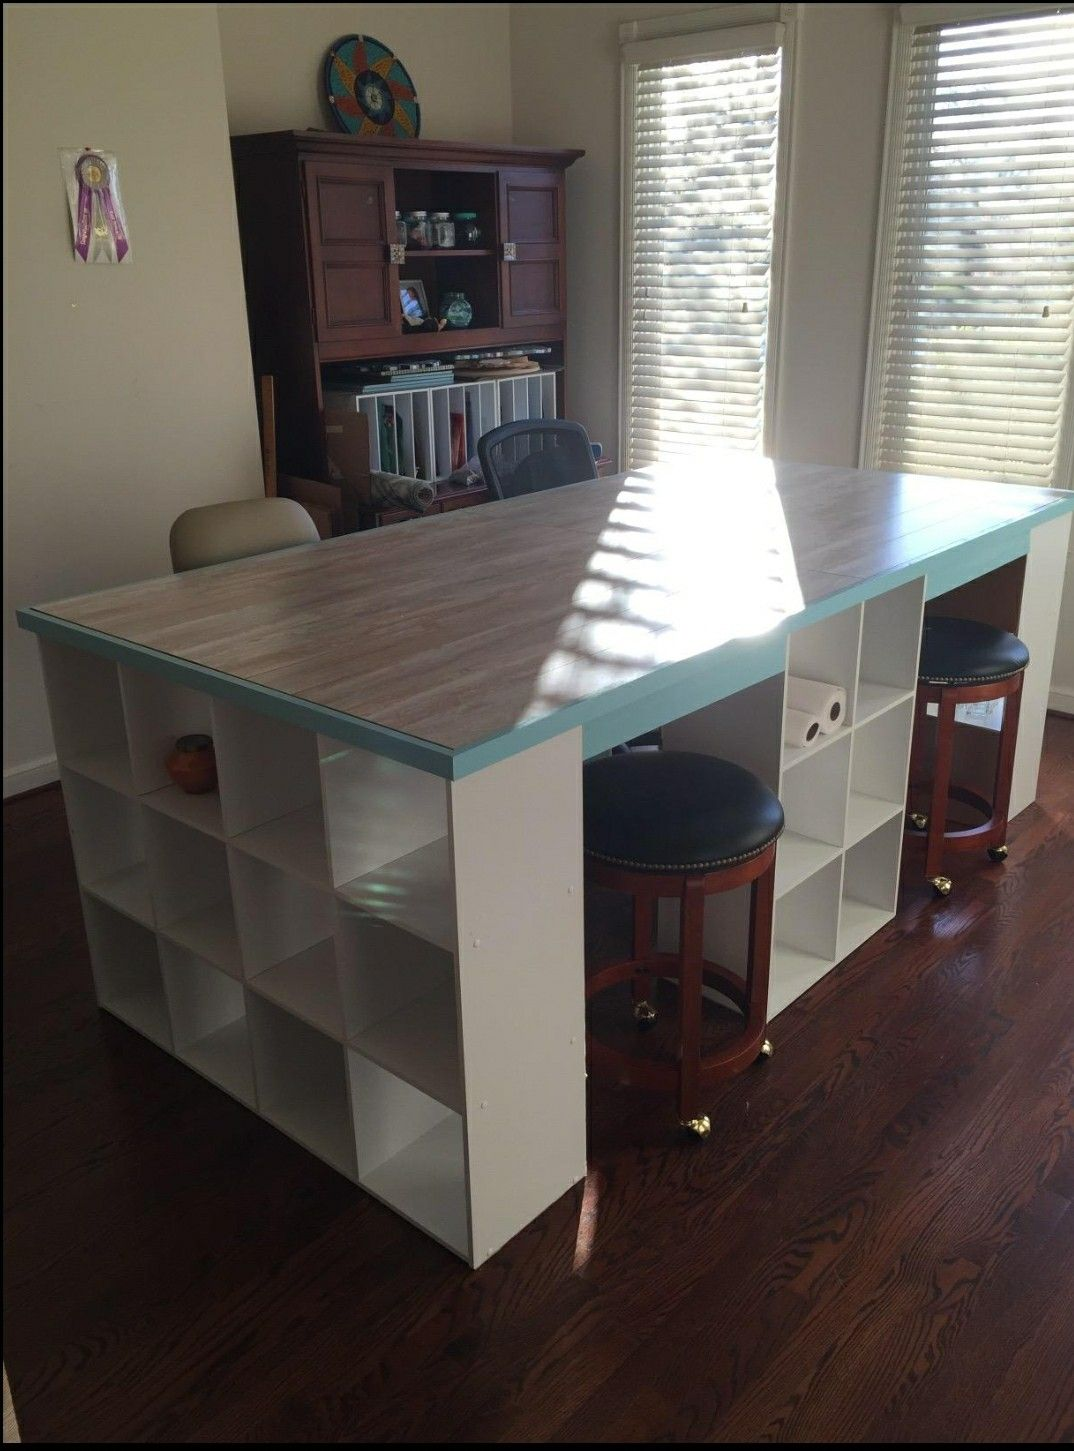 Cube Storage Made Into A Table Great For A Craft Room Or Play Room Diy Desk Plans Cube Desk Craft Room Design